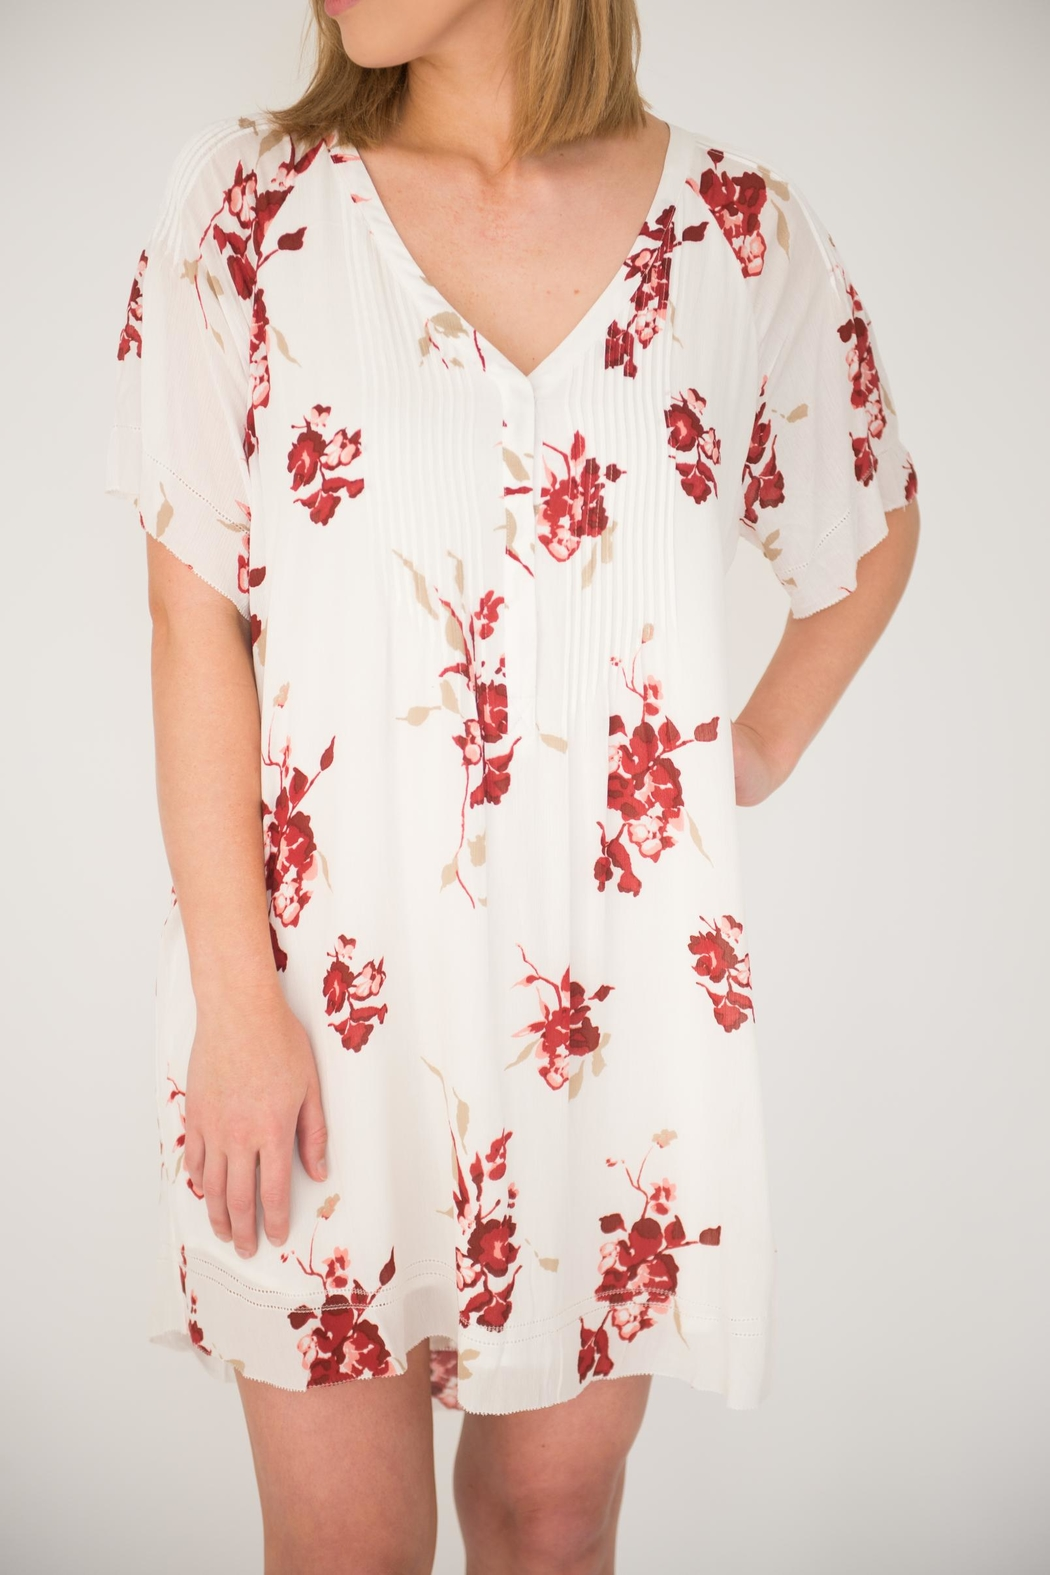 Gentle Fawn Caraway Floral Dress - Front Cropped Image